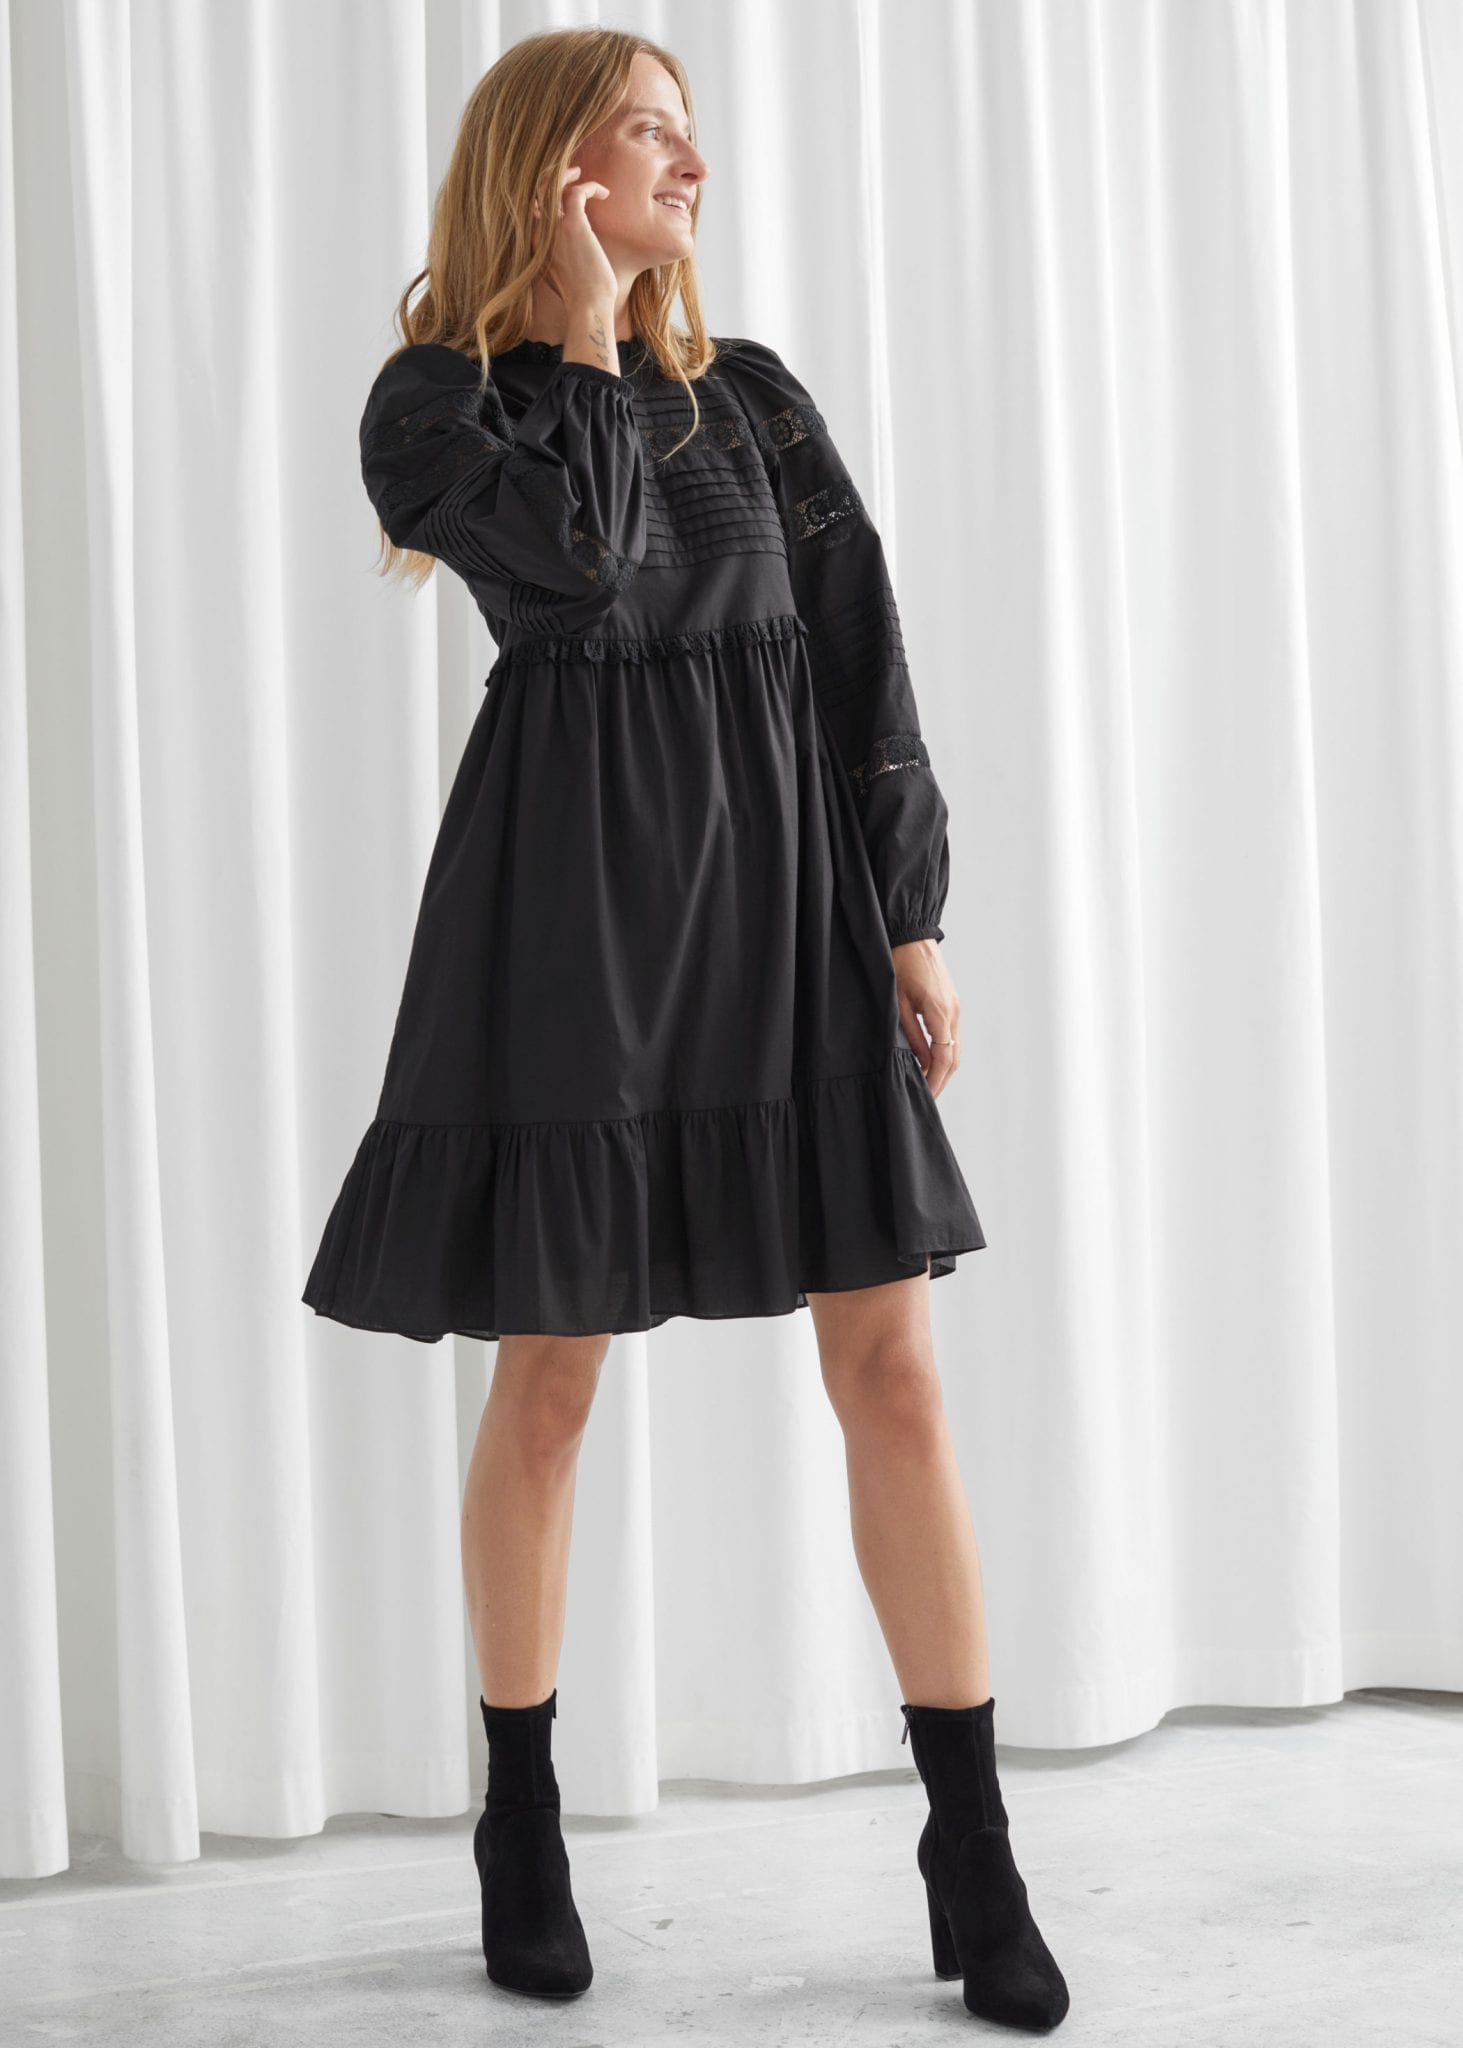 & OTHER STORIES Tiered Mini Lace Dress